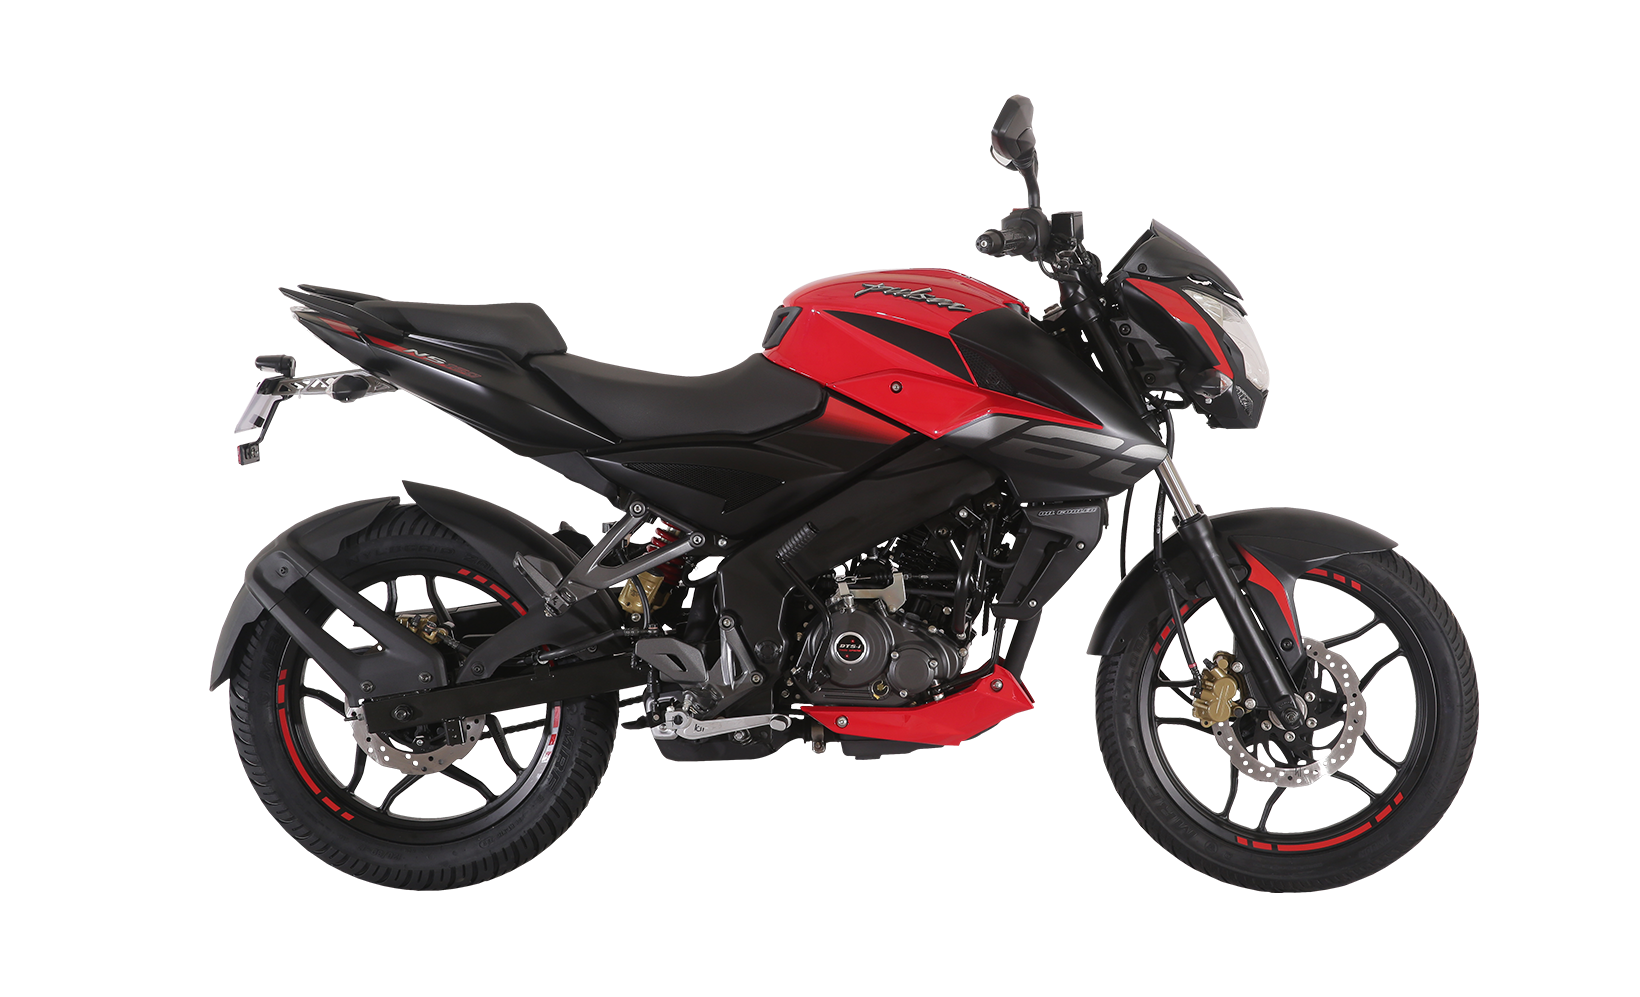 Black and Red Bajaj Pulsar NS 160cc Twin Disk Motorcycle